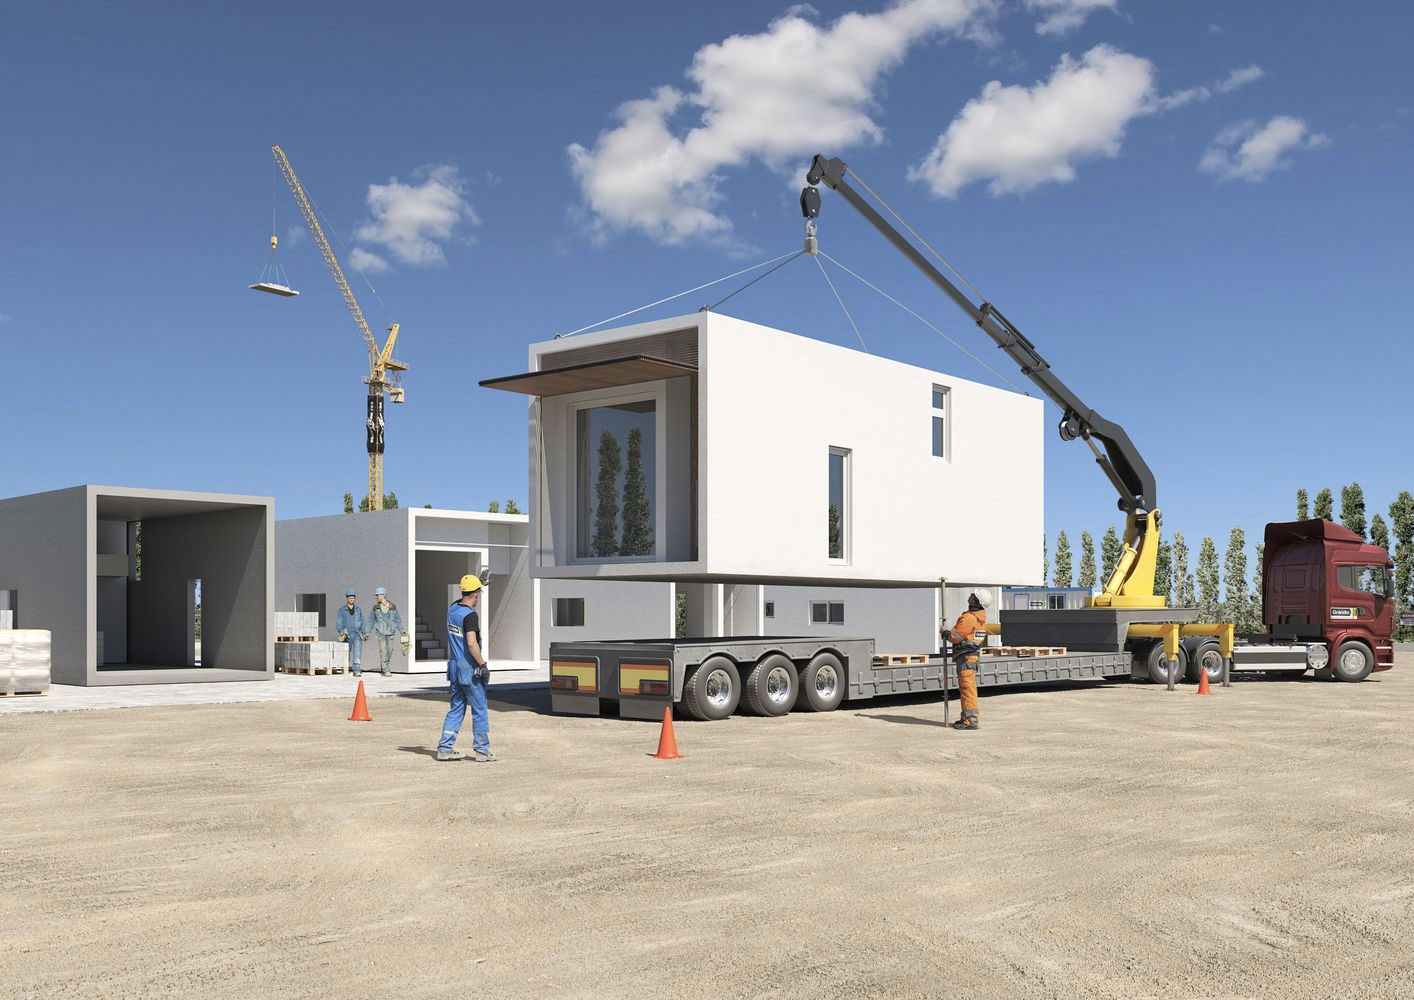 The concrete prefab can be constructed without foundations, meaning the 45 sq m building can be tranported by lorry and remounted as necessary.